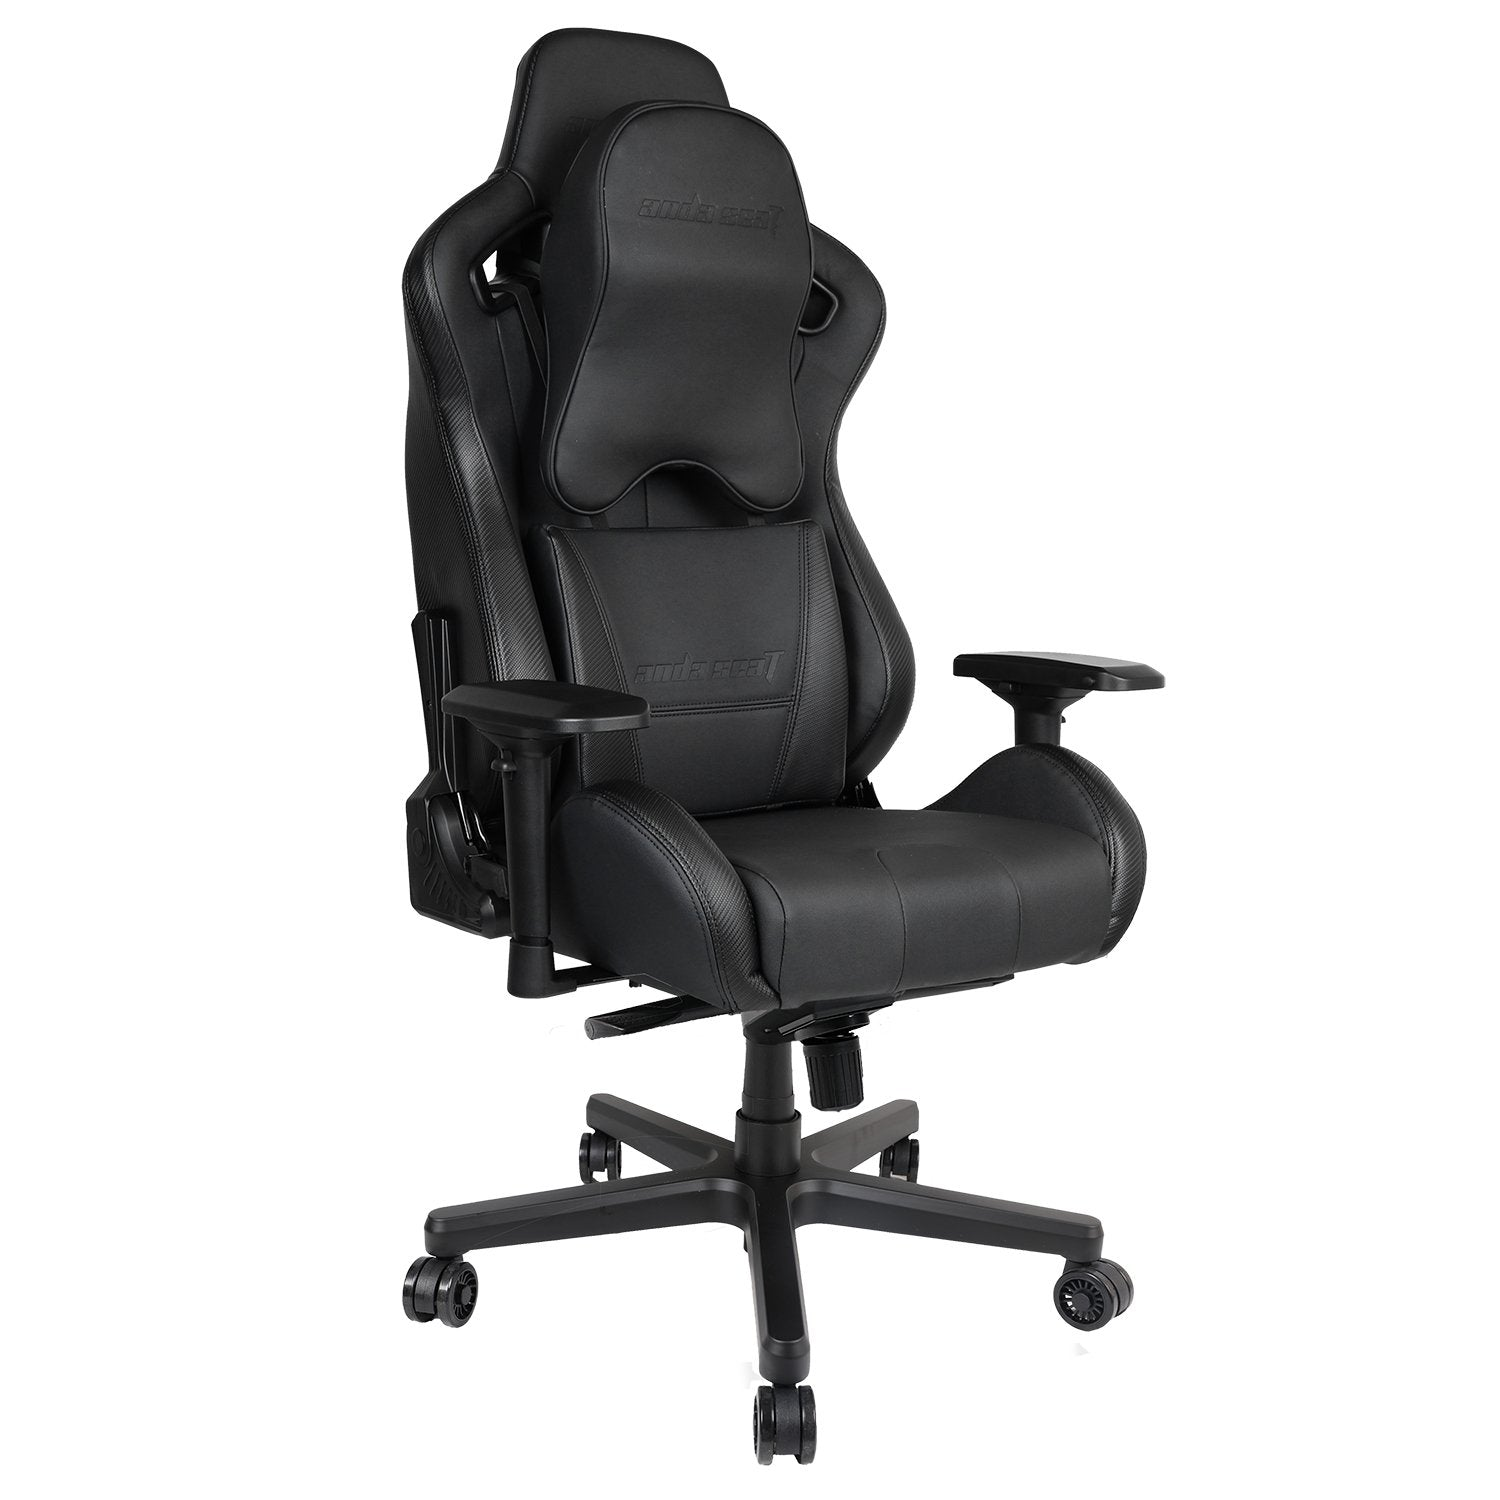 Anda Seat Dark Knight Premium Gaming Chair | King of Gaming Chair